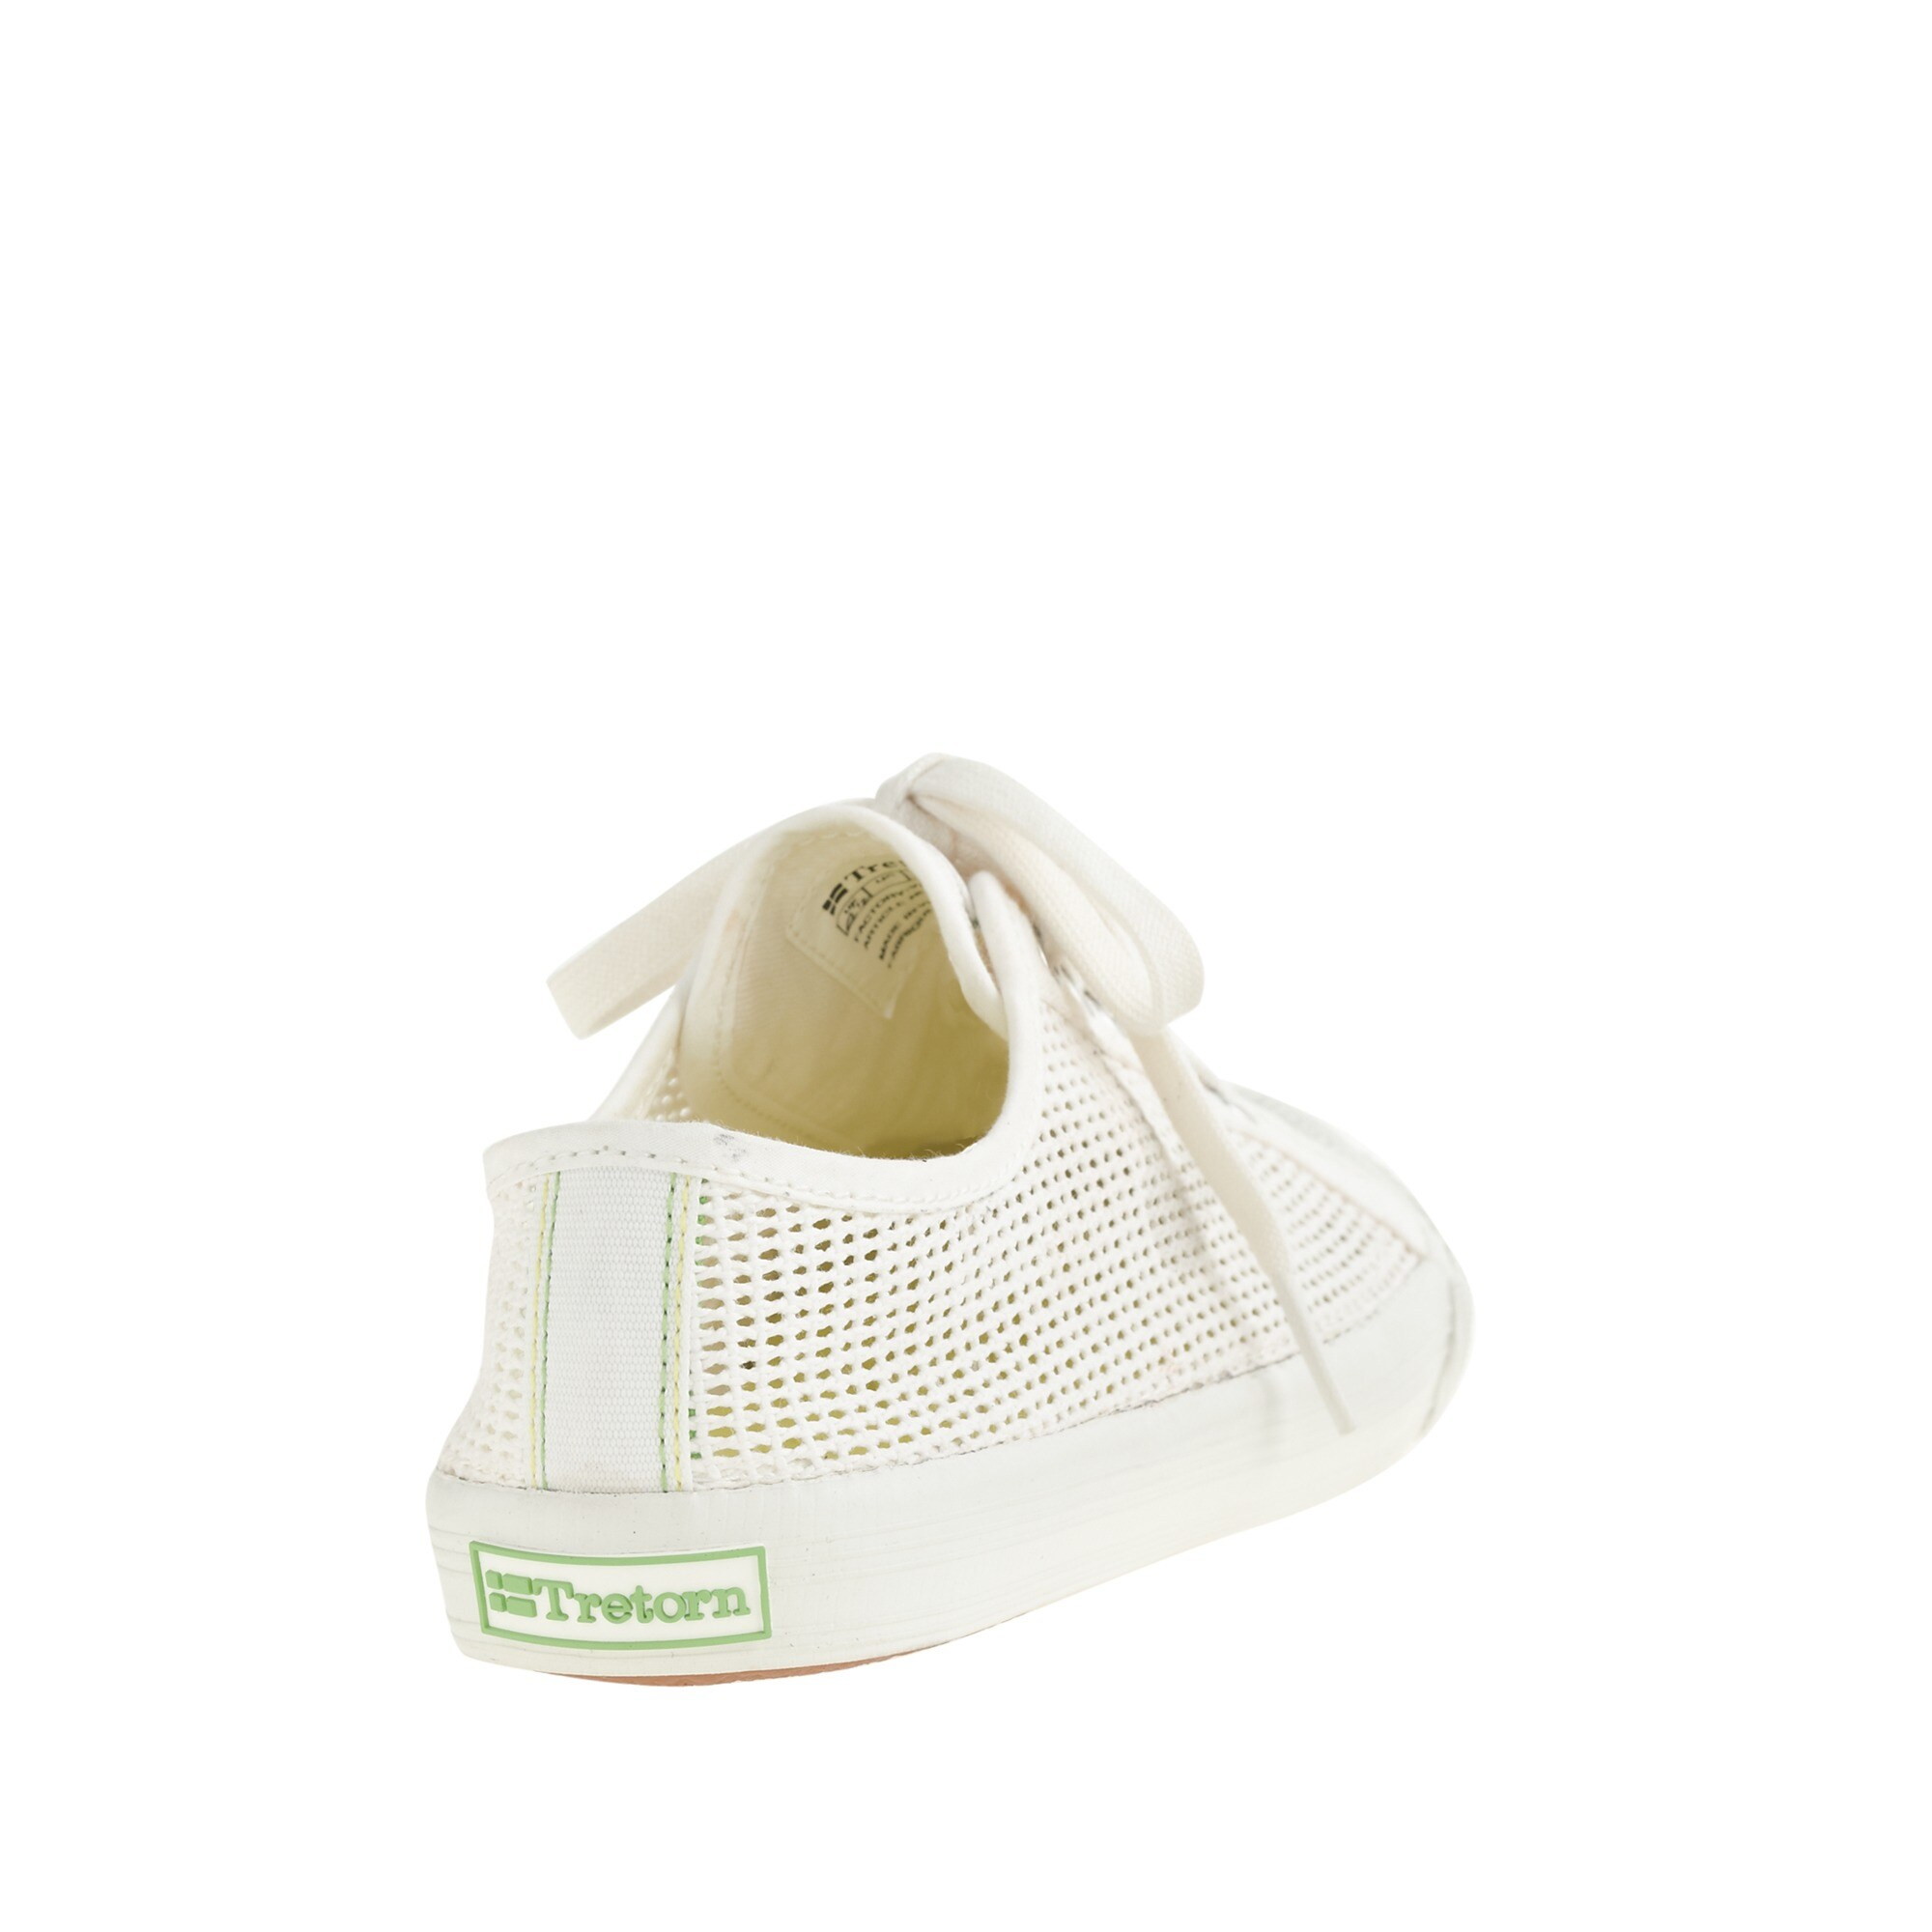 Image 5 for Women's Tretorn® Tournament Net for J.Crew sneakers